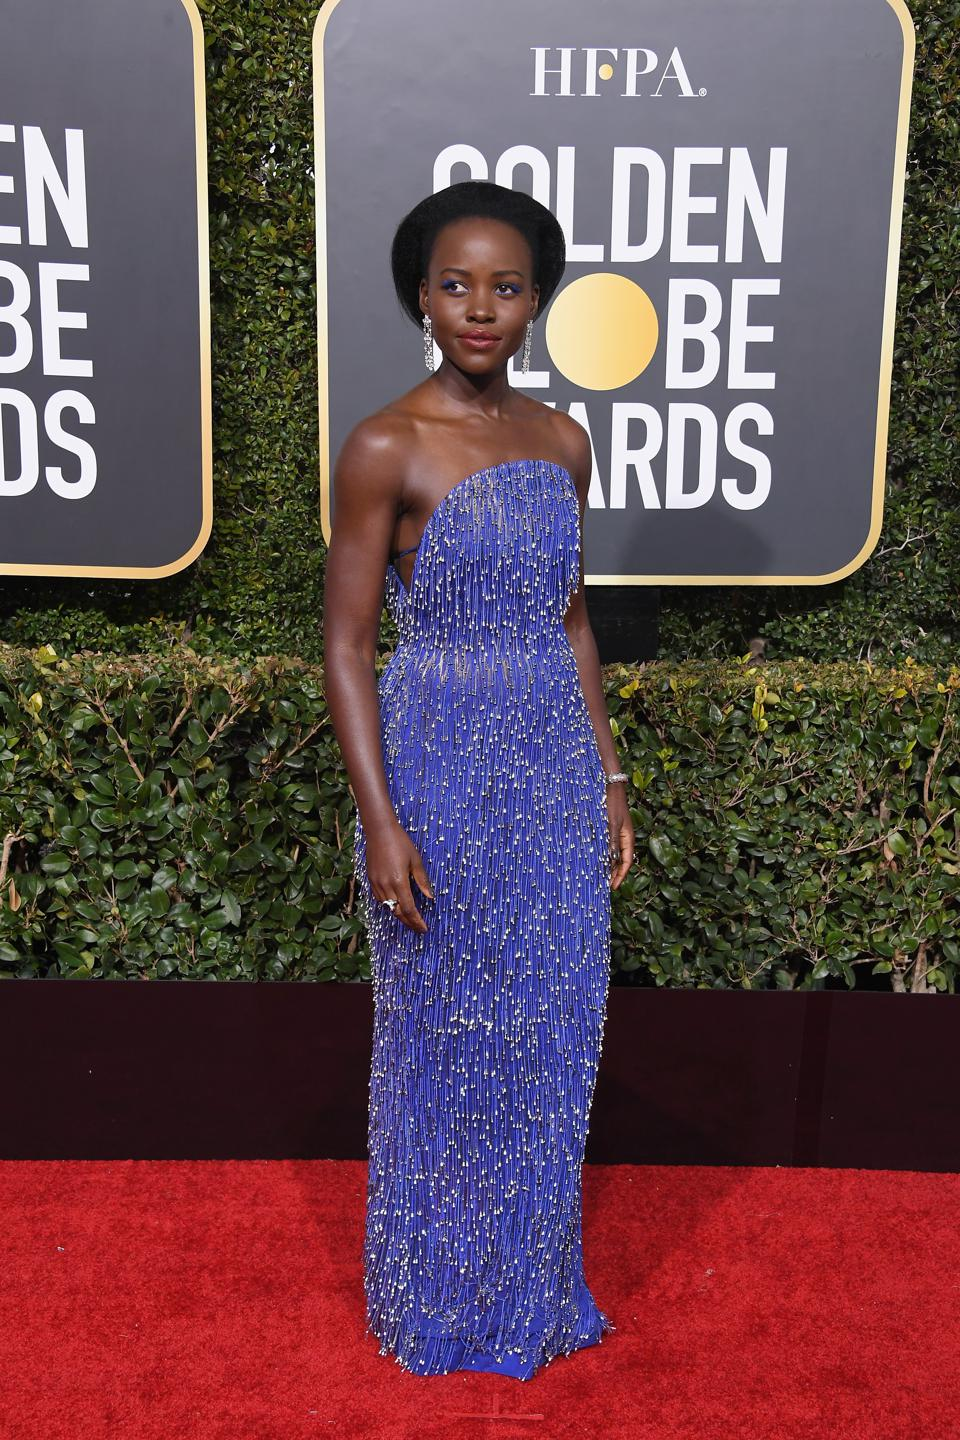 Lupita Nyong'o shimmers in Calvin Klein by Appointment.